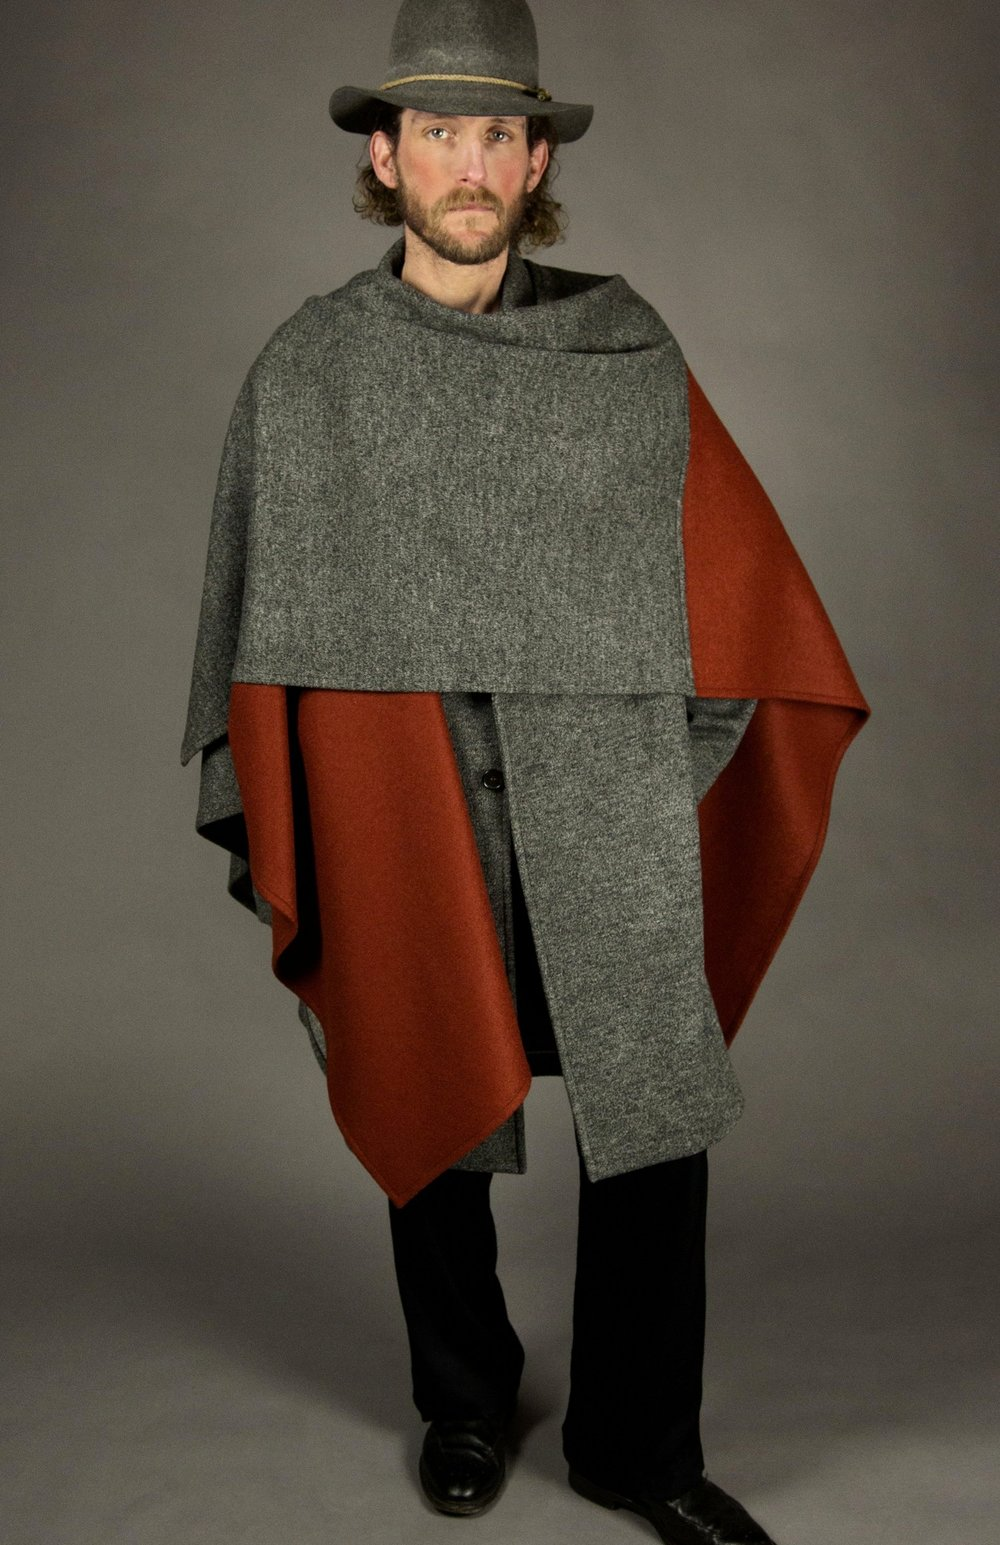 cloak 1 charcoal/rust color block  square-cut blanket wrap with open front.  one size  made in america  100% italian heathered-wool jersey/ 100% italian boiled-wool jersey